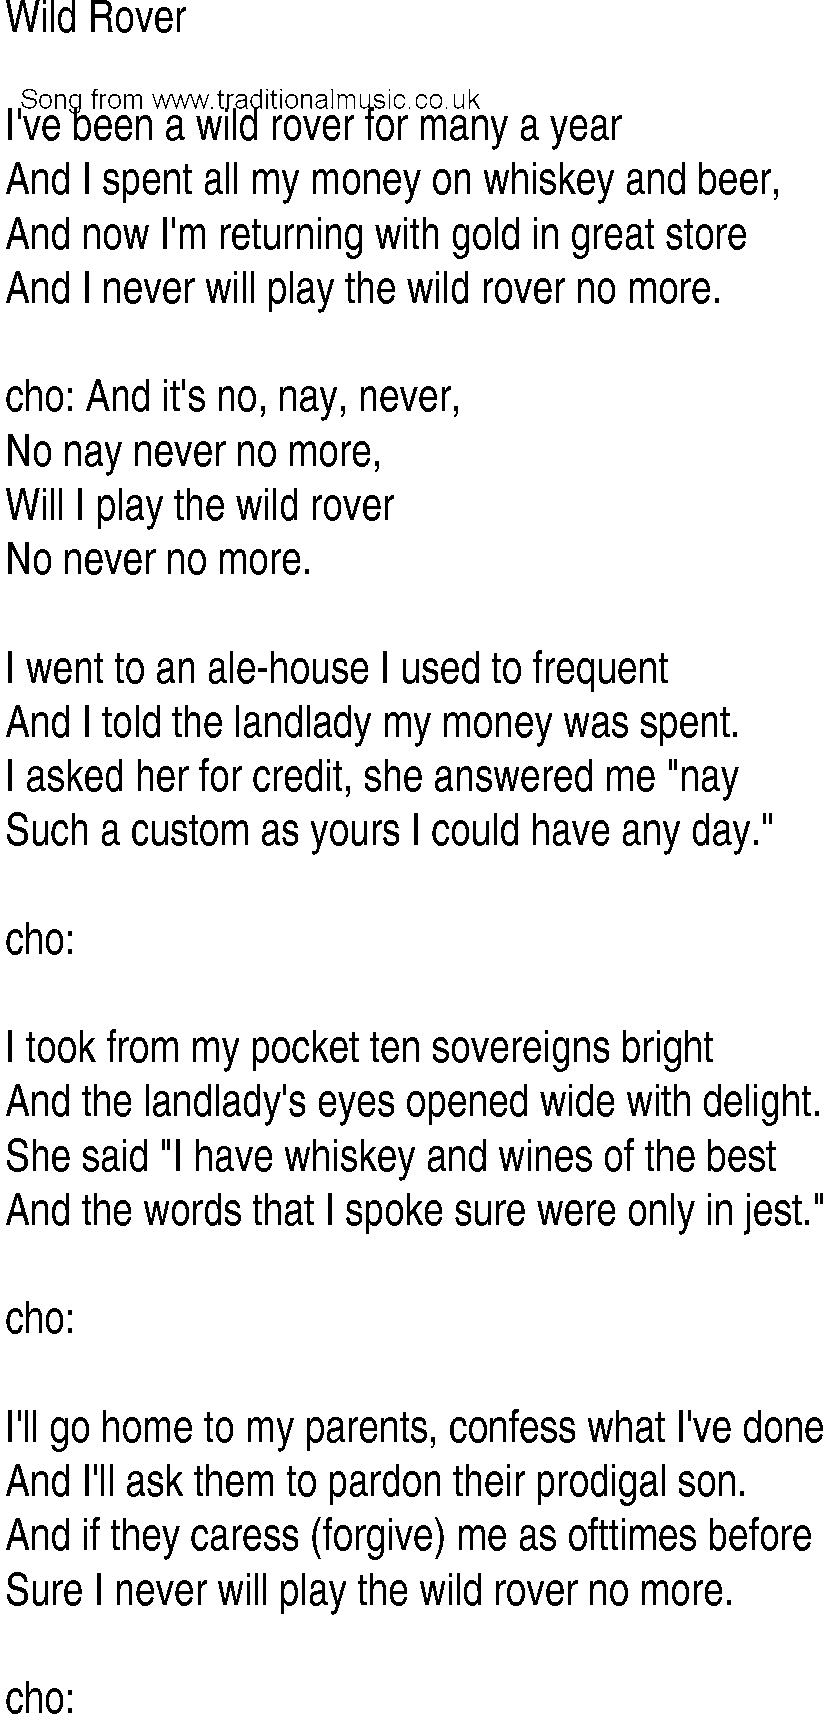 In to the wild lyrics